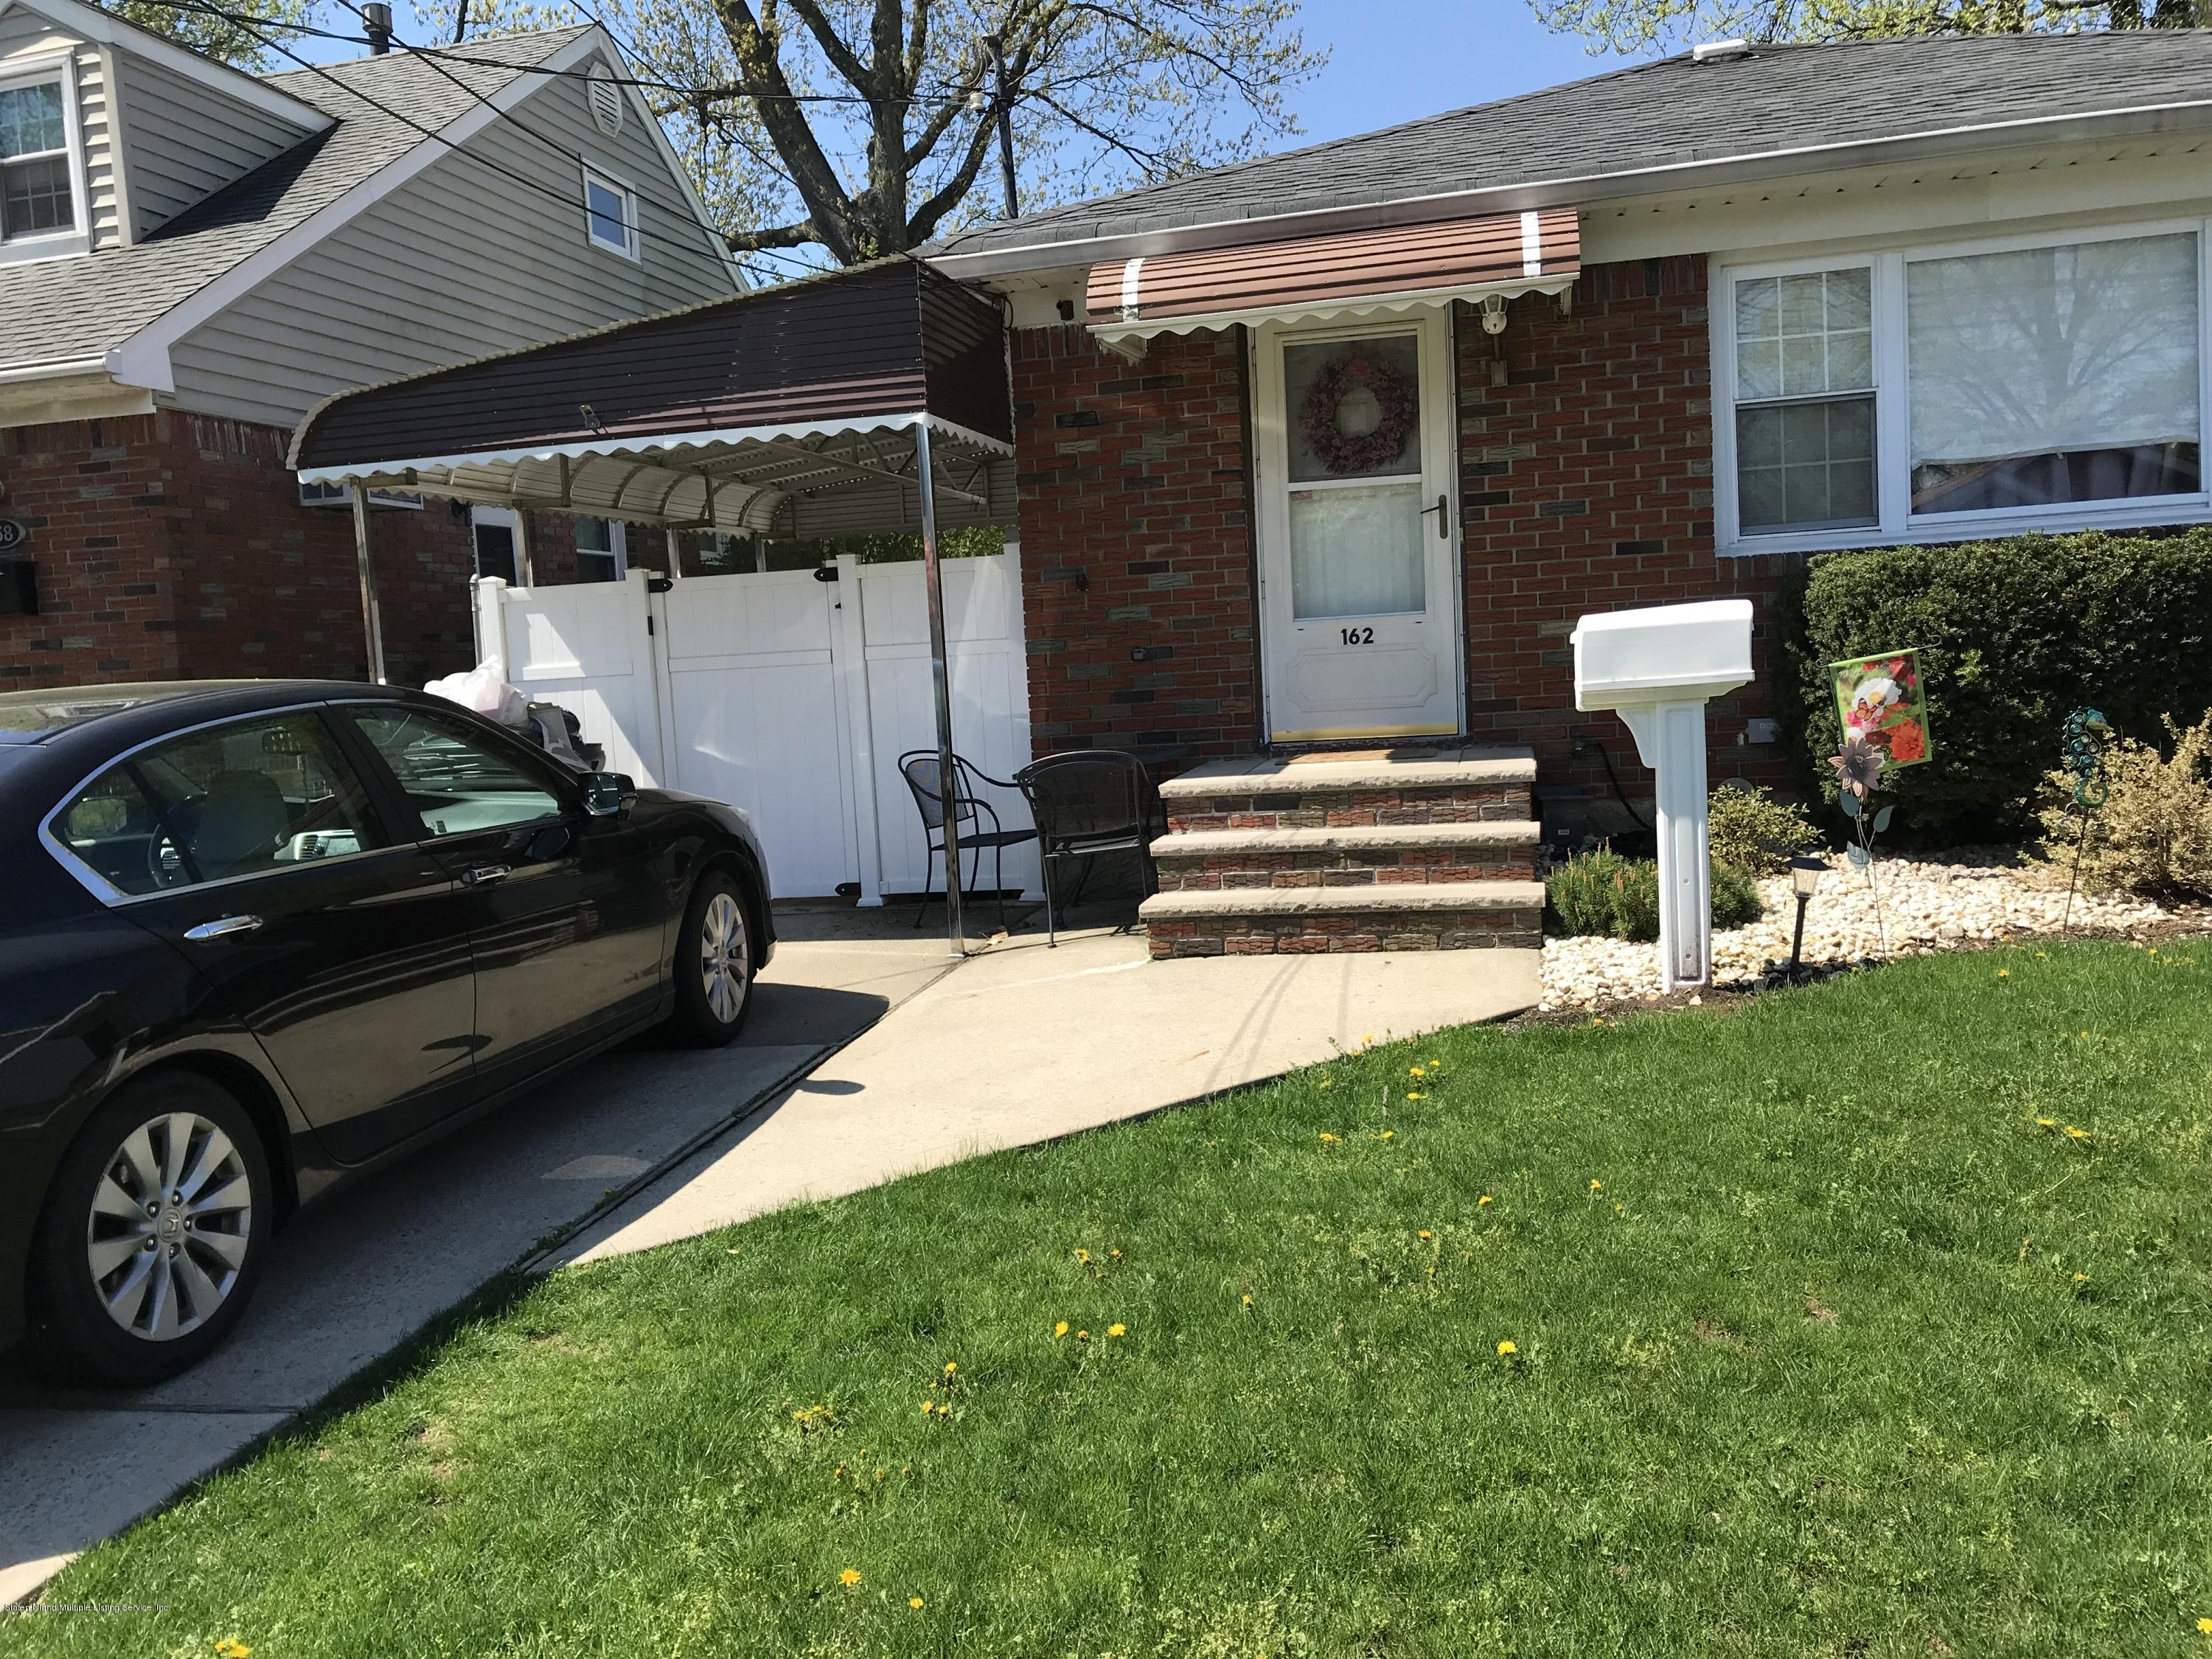 Single Family - Detached 162 Shafter Avenue  Staten Island, NY 10308, MLS-1128358-2